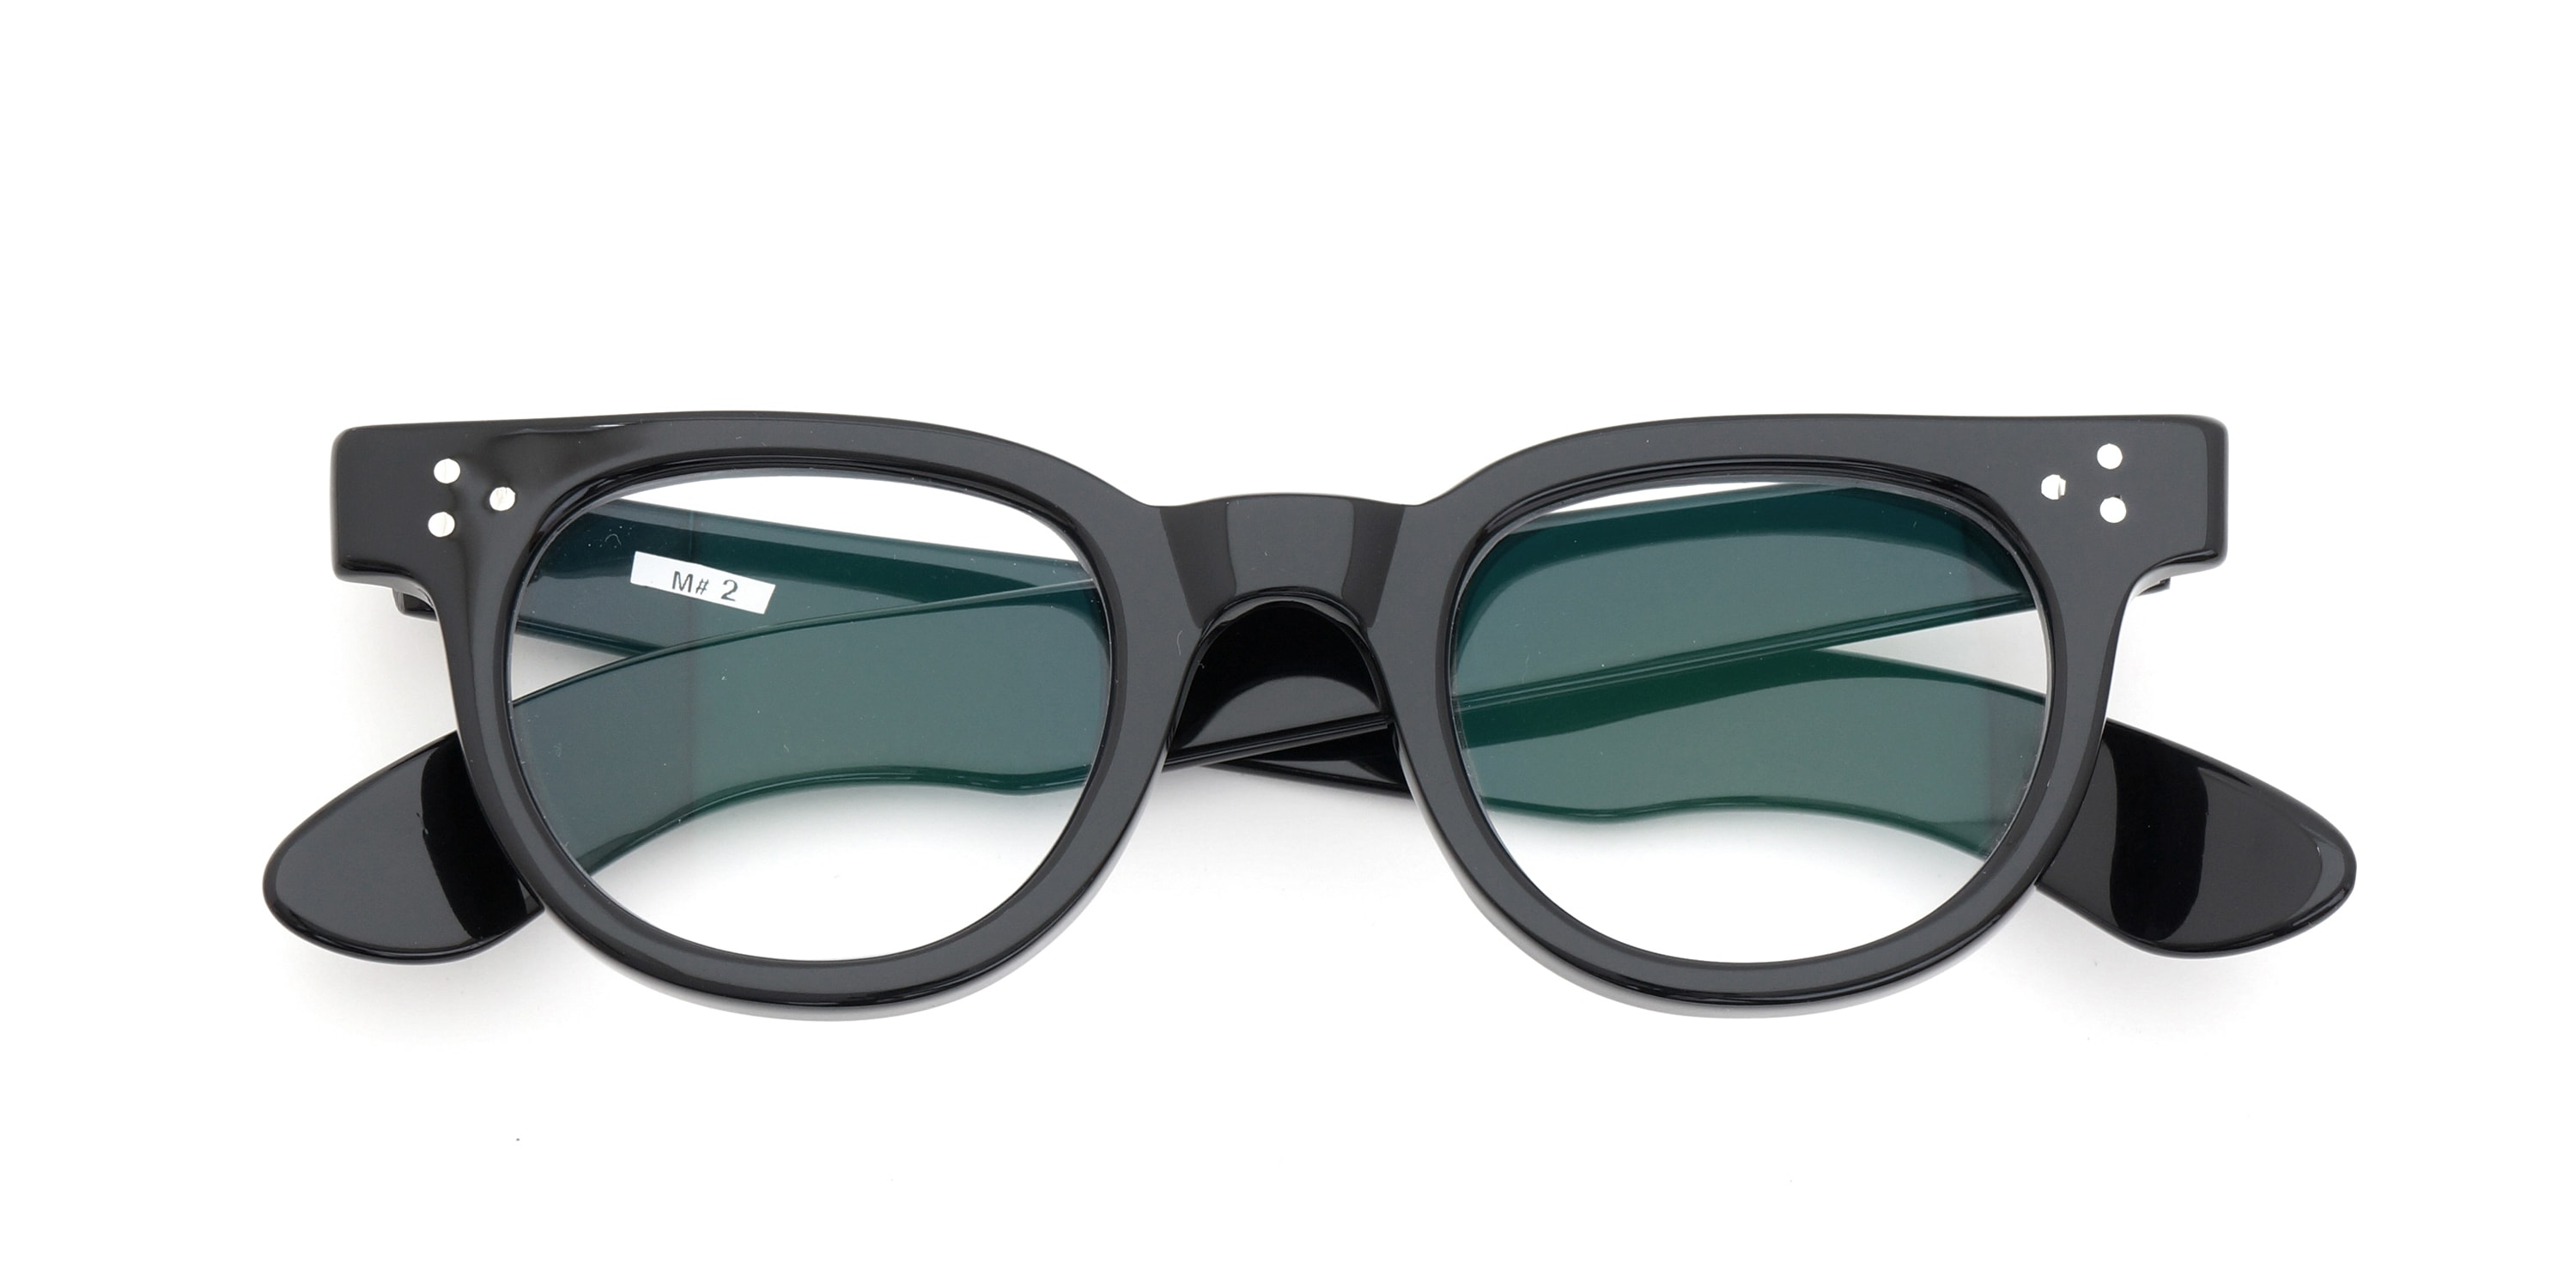 The Spectacle メガネ 1950s-70s TART OPTICAL FDR (FRAME USA) BLACK 44-24 イメージ6